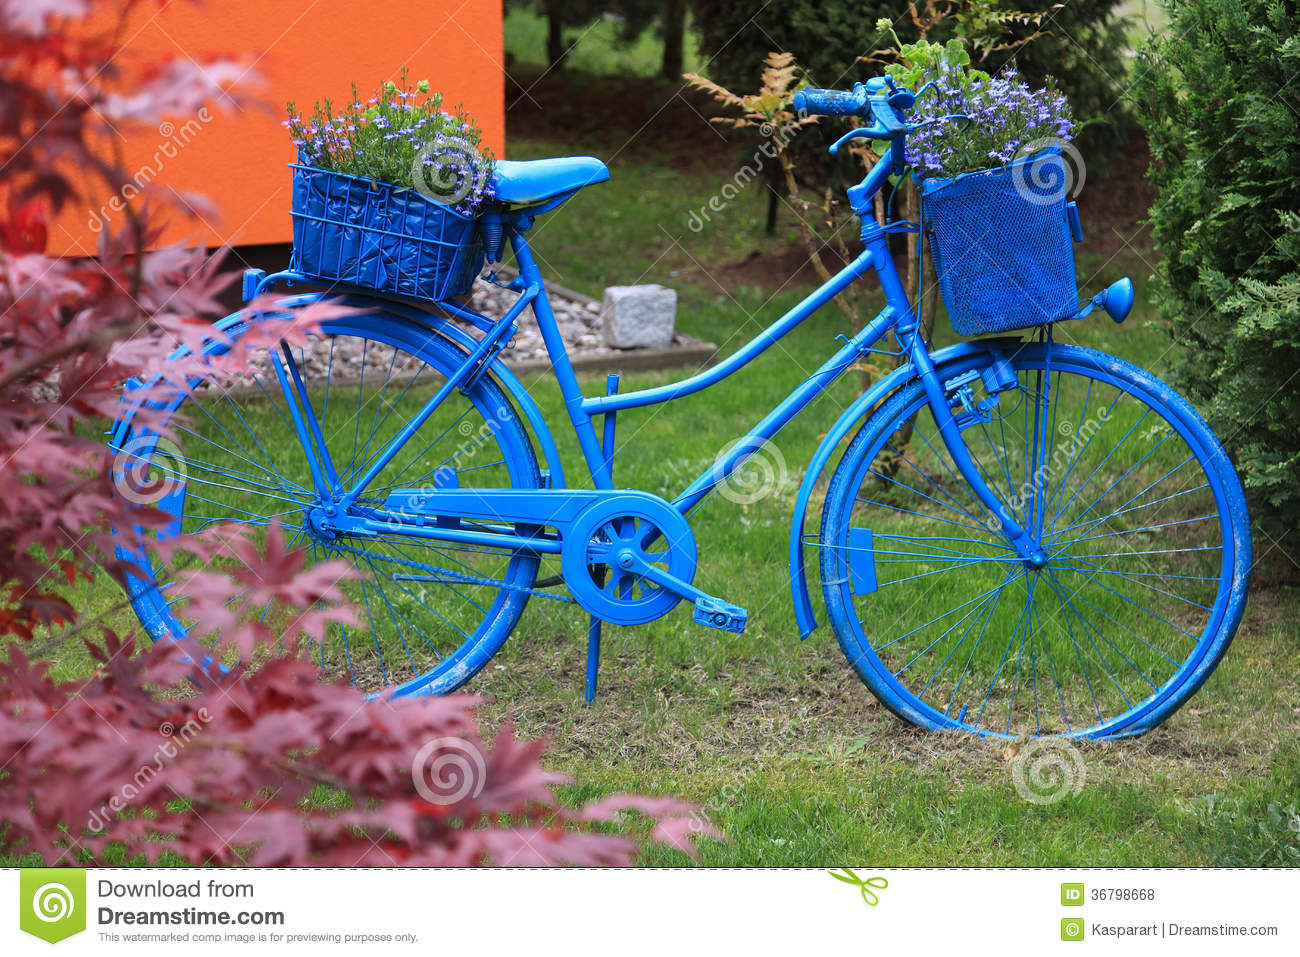 blue bicycle garden decoration royalty free stock photos - image